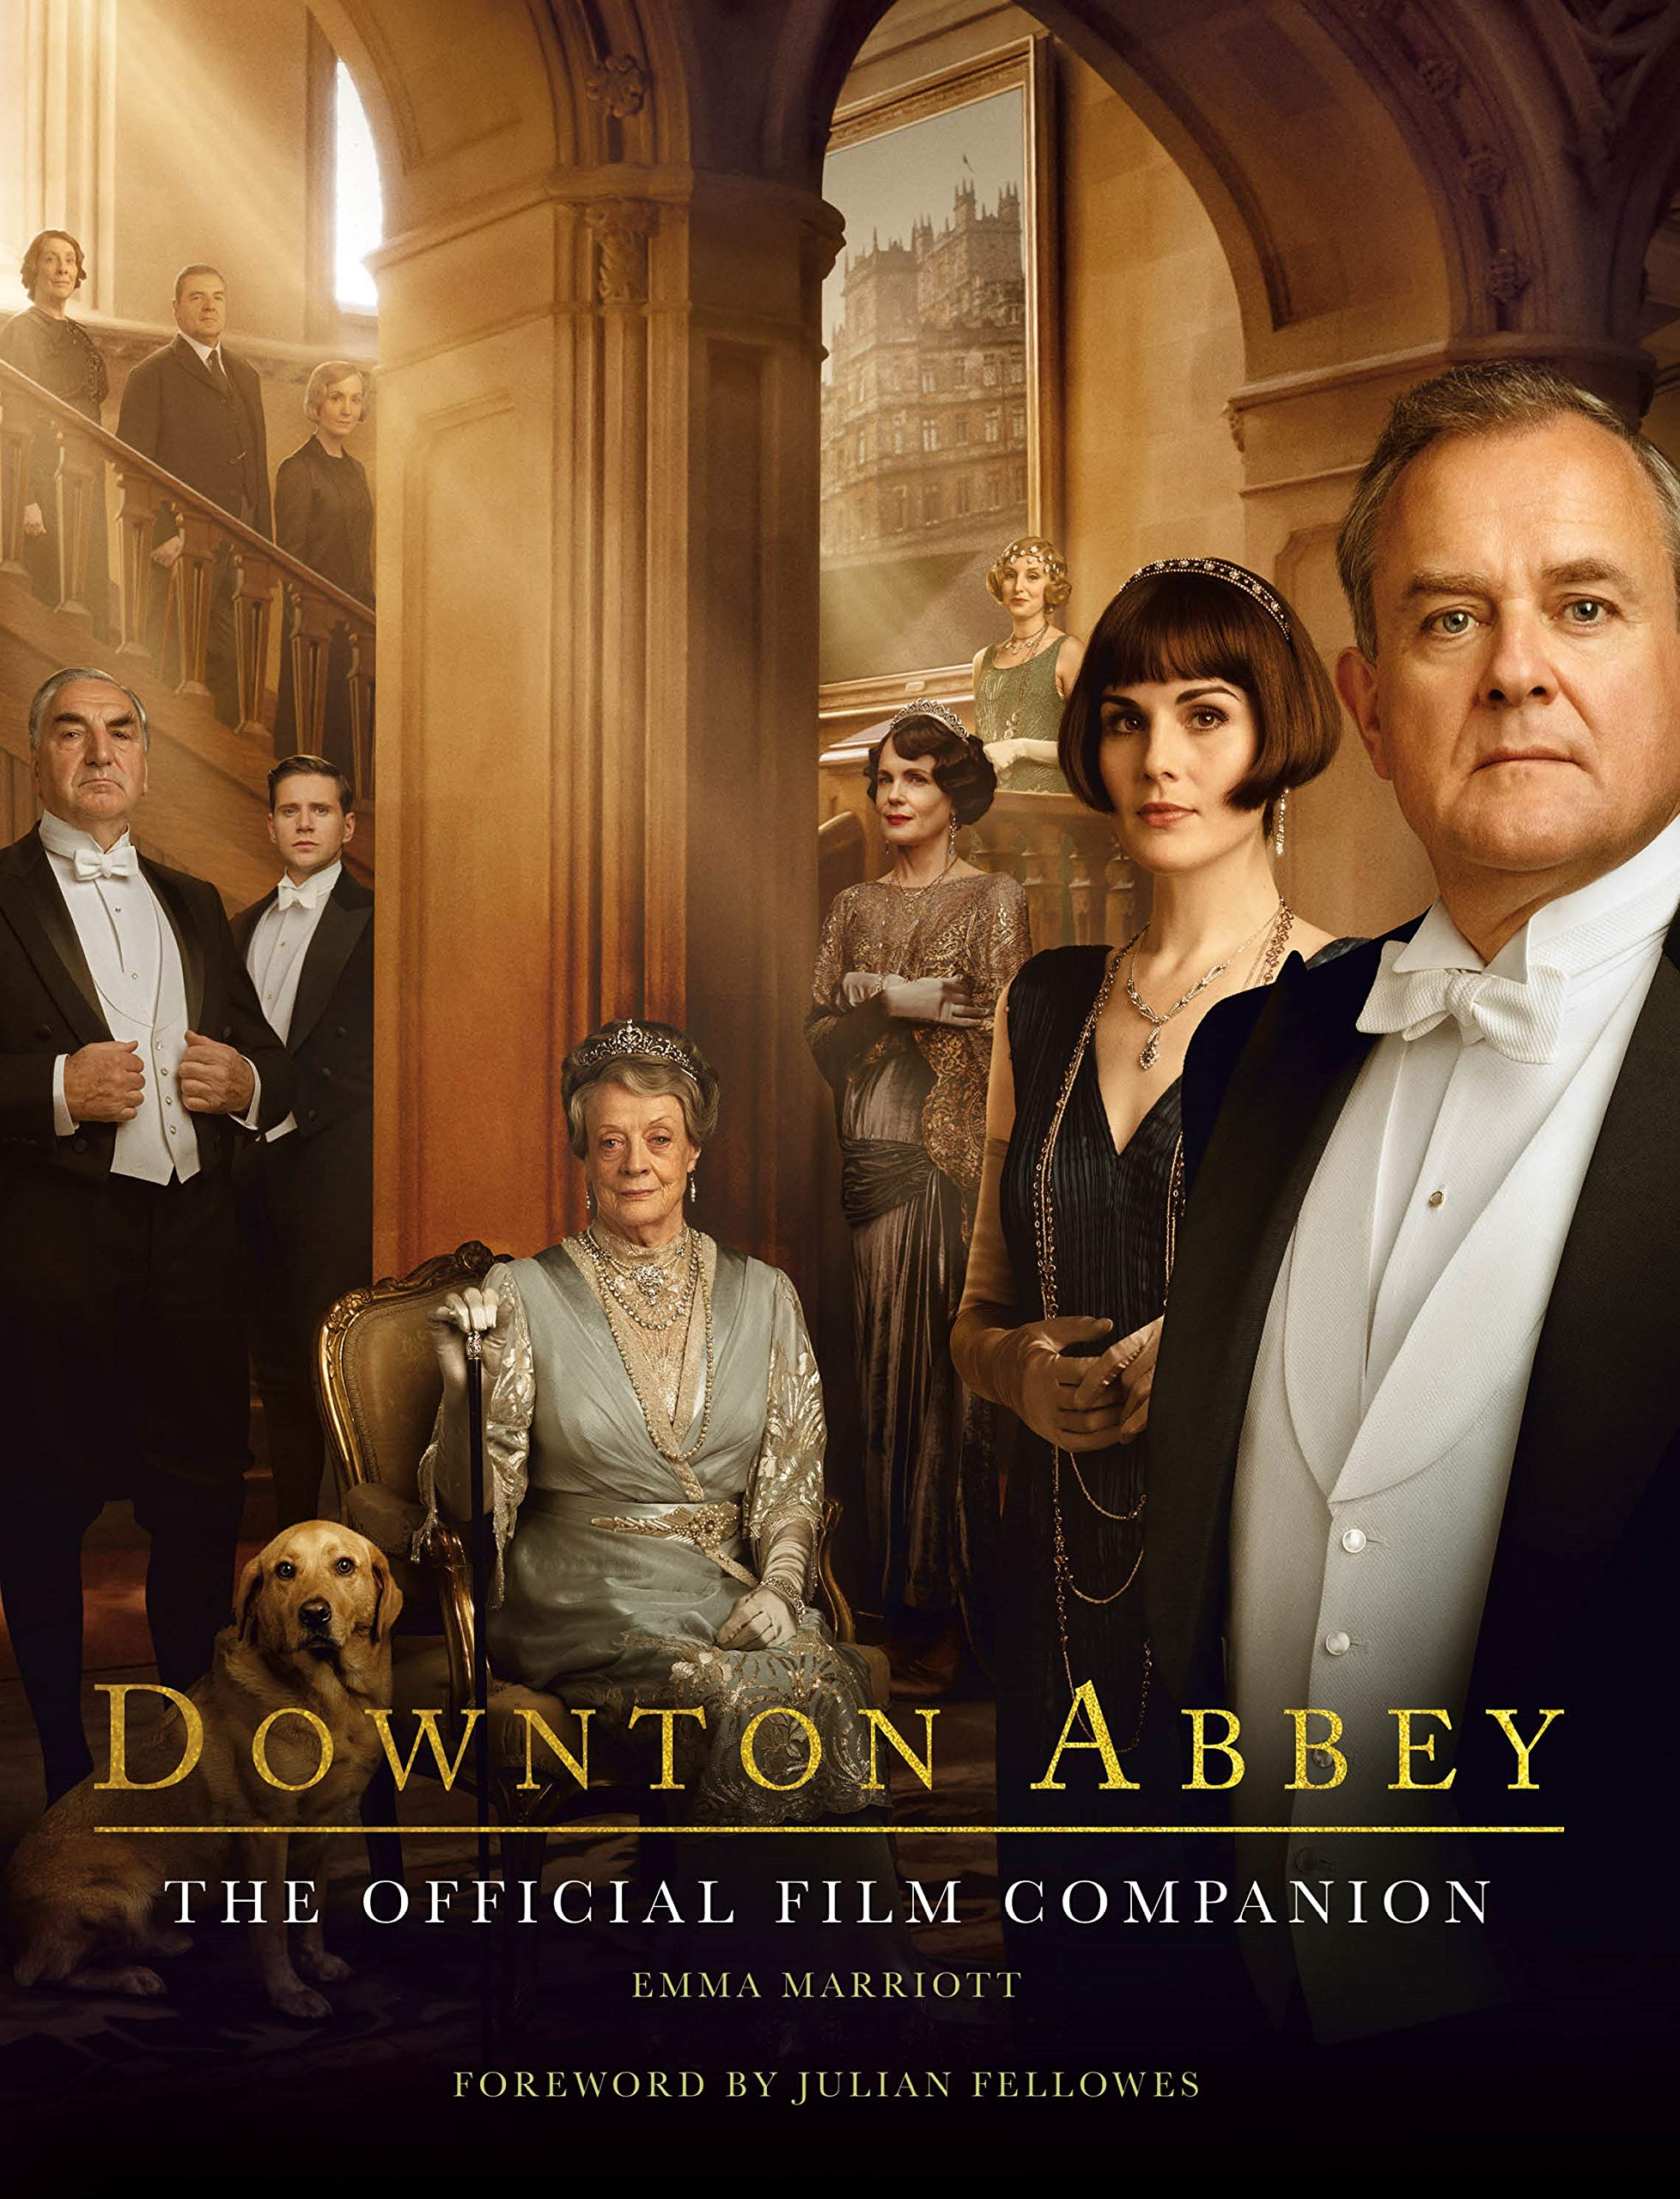 The Official Downton Abbey Film Companion, by Emma Marriott (2019)